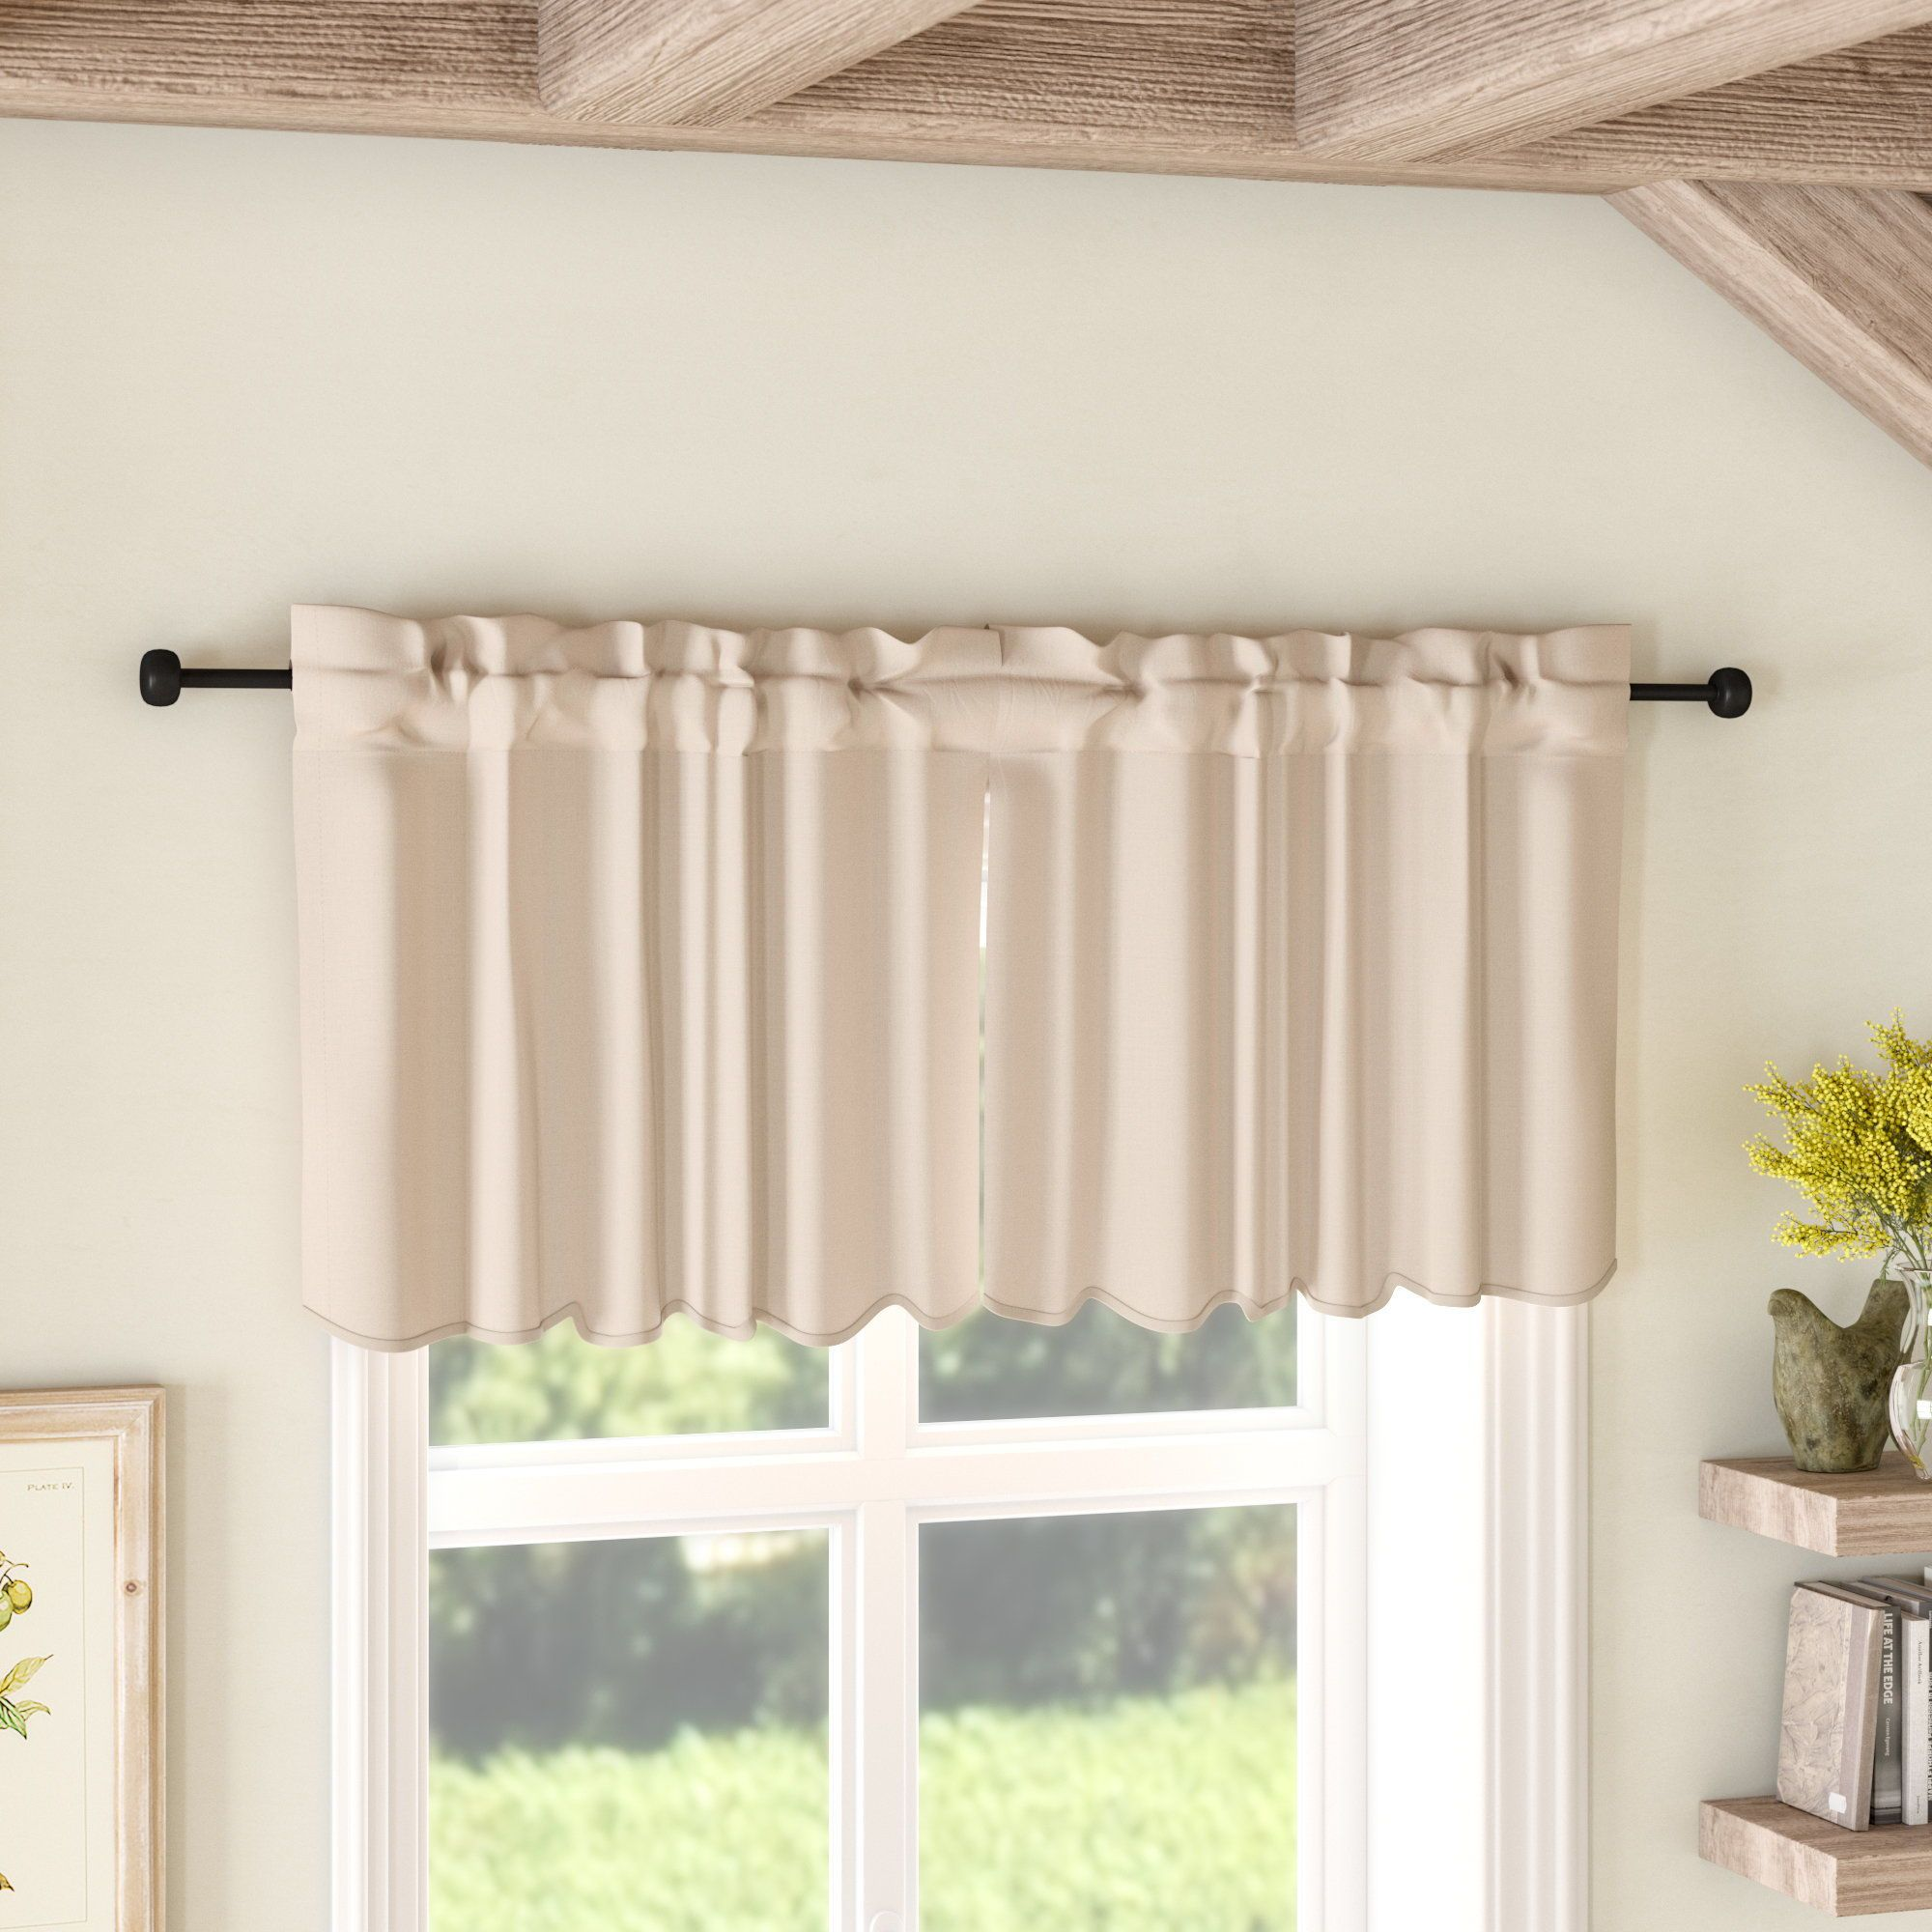 Farmhouse Valances Rustic Valances Farmhouse Goals In 2020 Farmhouse Valances Valance Window Valance